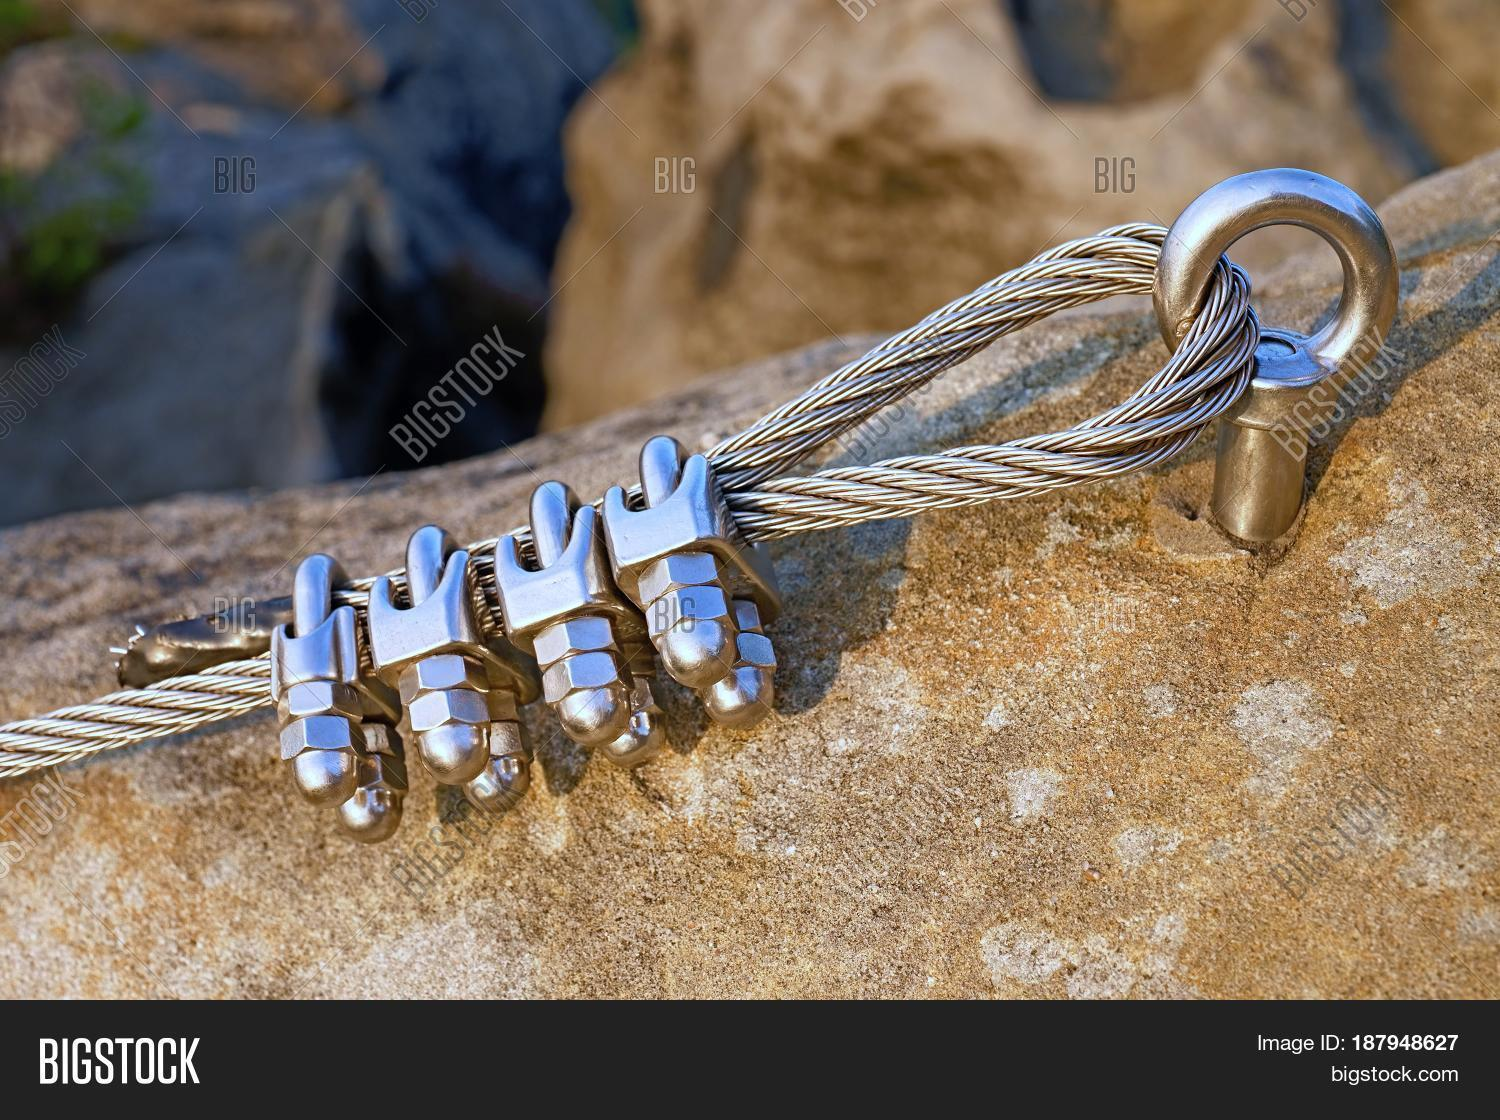 Solid Knot On Steel Image & Photo (Free Trial) | Bigstock